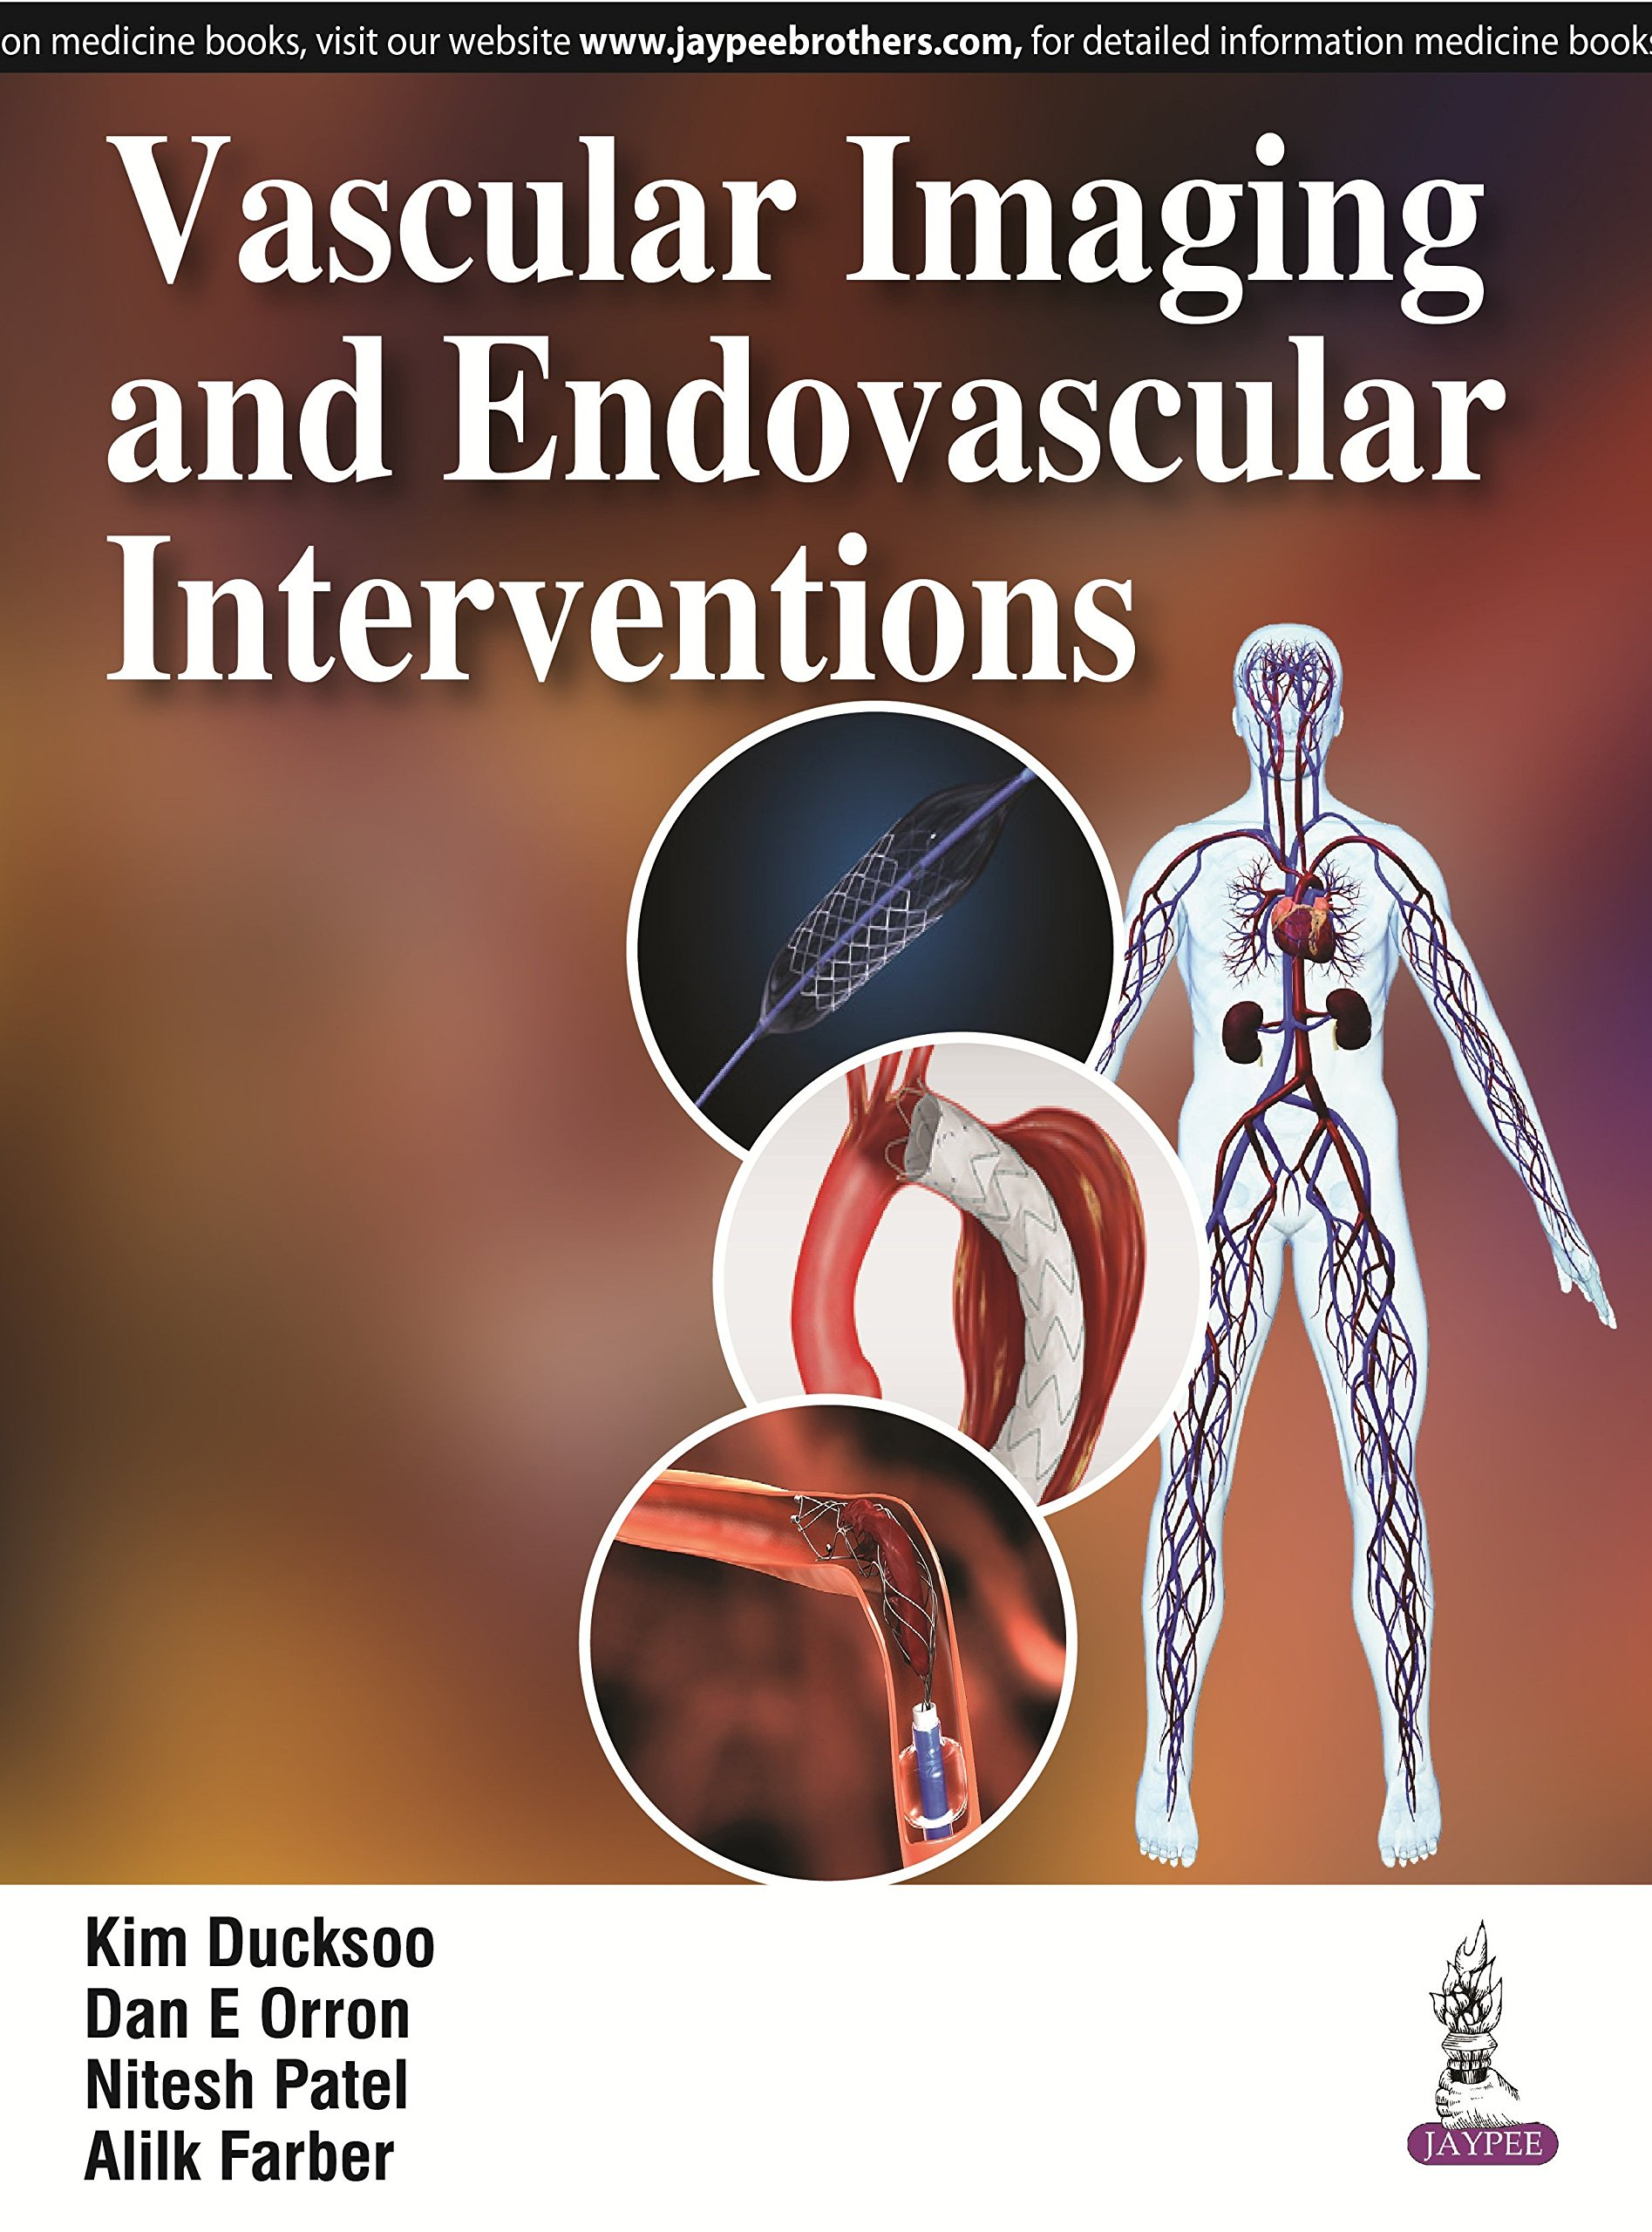 Vascular Medicine and Endovascular Board Review Course — Now On CD